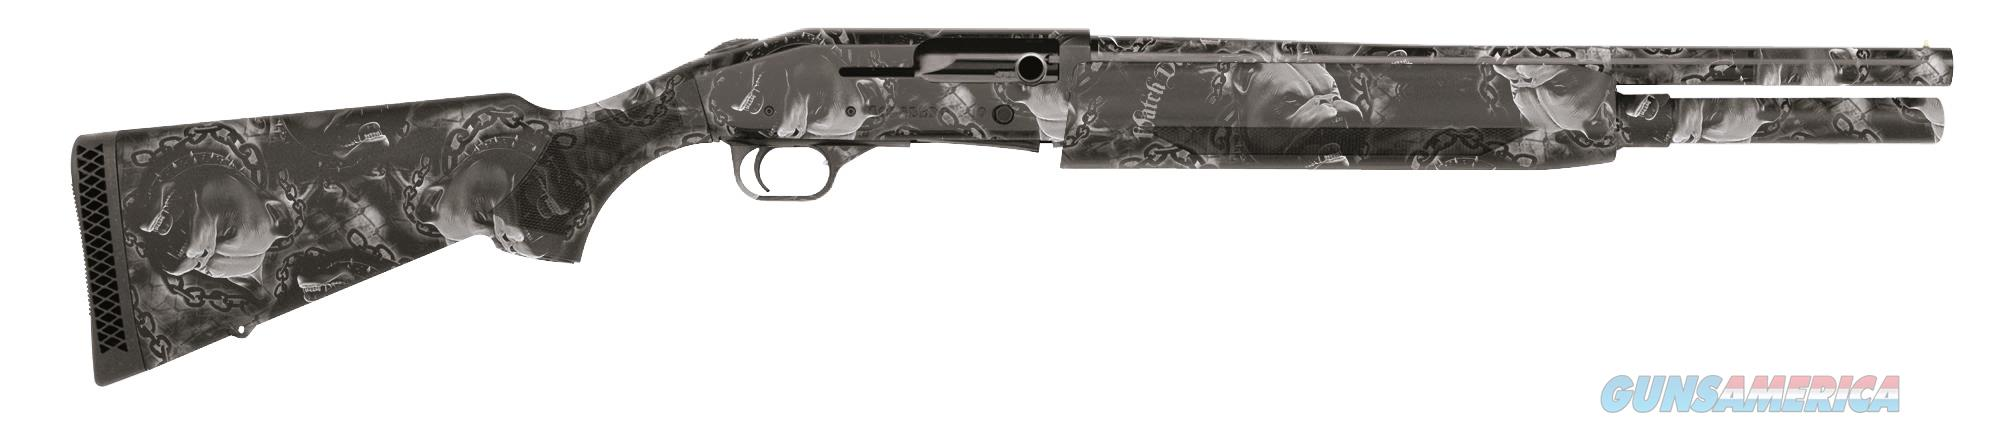 Mossberg 930 home security model 85320 accessories